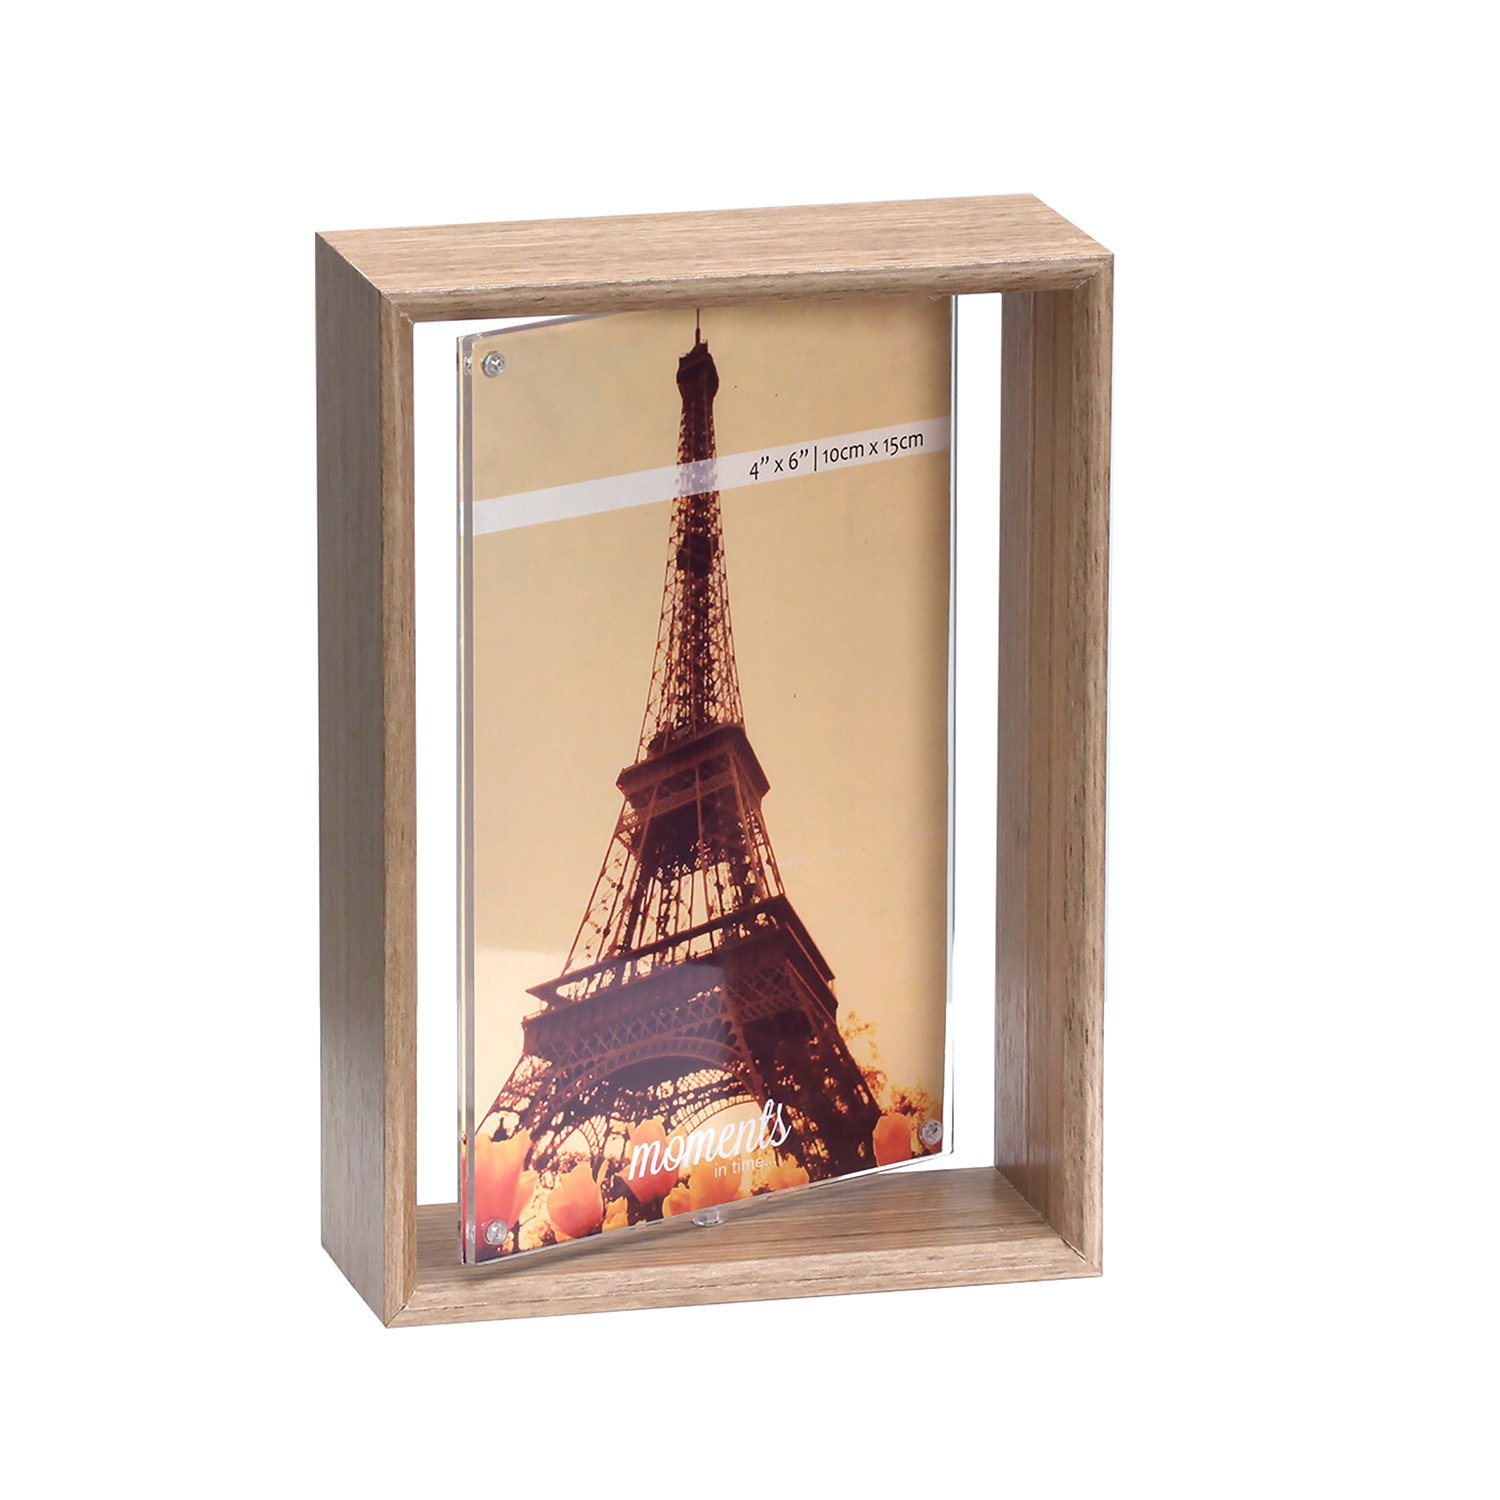 Unique 4''x6'' Rotating 2-Sided Spinner Wood Photo Frame w/ Acrylic Sleeve Picture Display Desktop Decoration by Marketing Innovations Intl